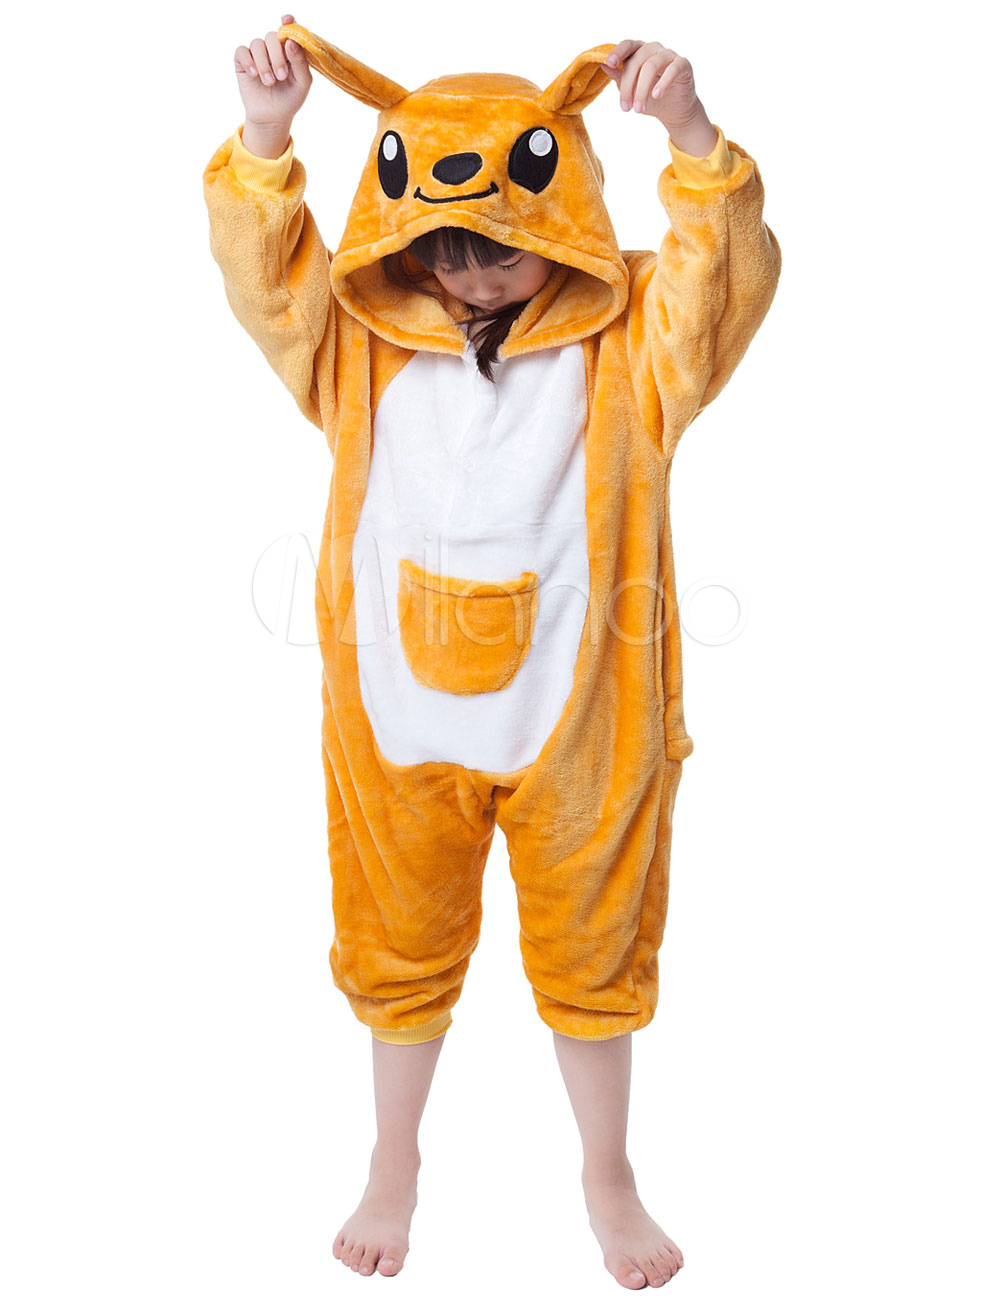 Buy Kigurumi Pajama Kangaroo Onesie For Kids Yellow Synthetic Jumpsuit Mascot Costume Halloween for $18.26 in Milanoo store